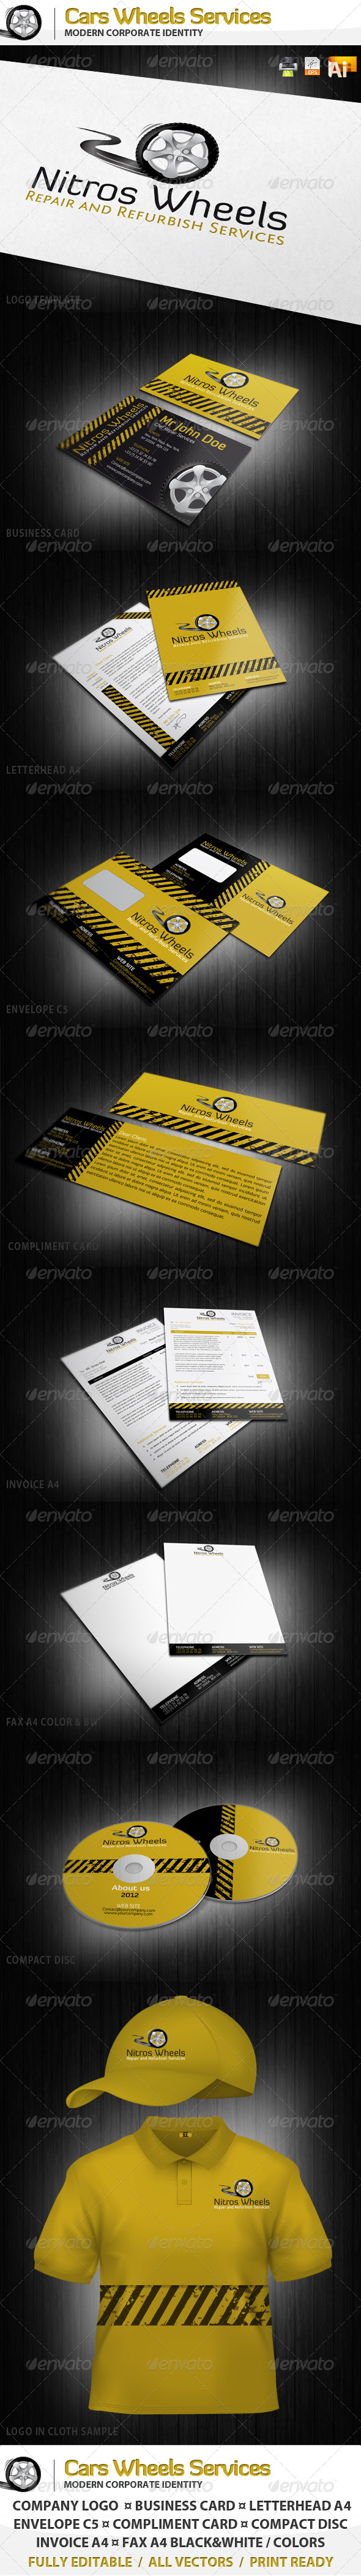 Cars Wheels Service Corporate Identity and Logo - Stationery Print Templates